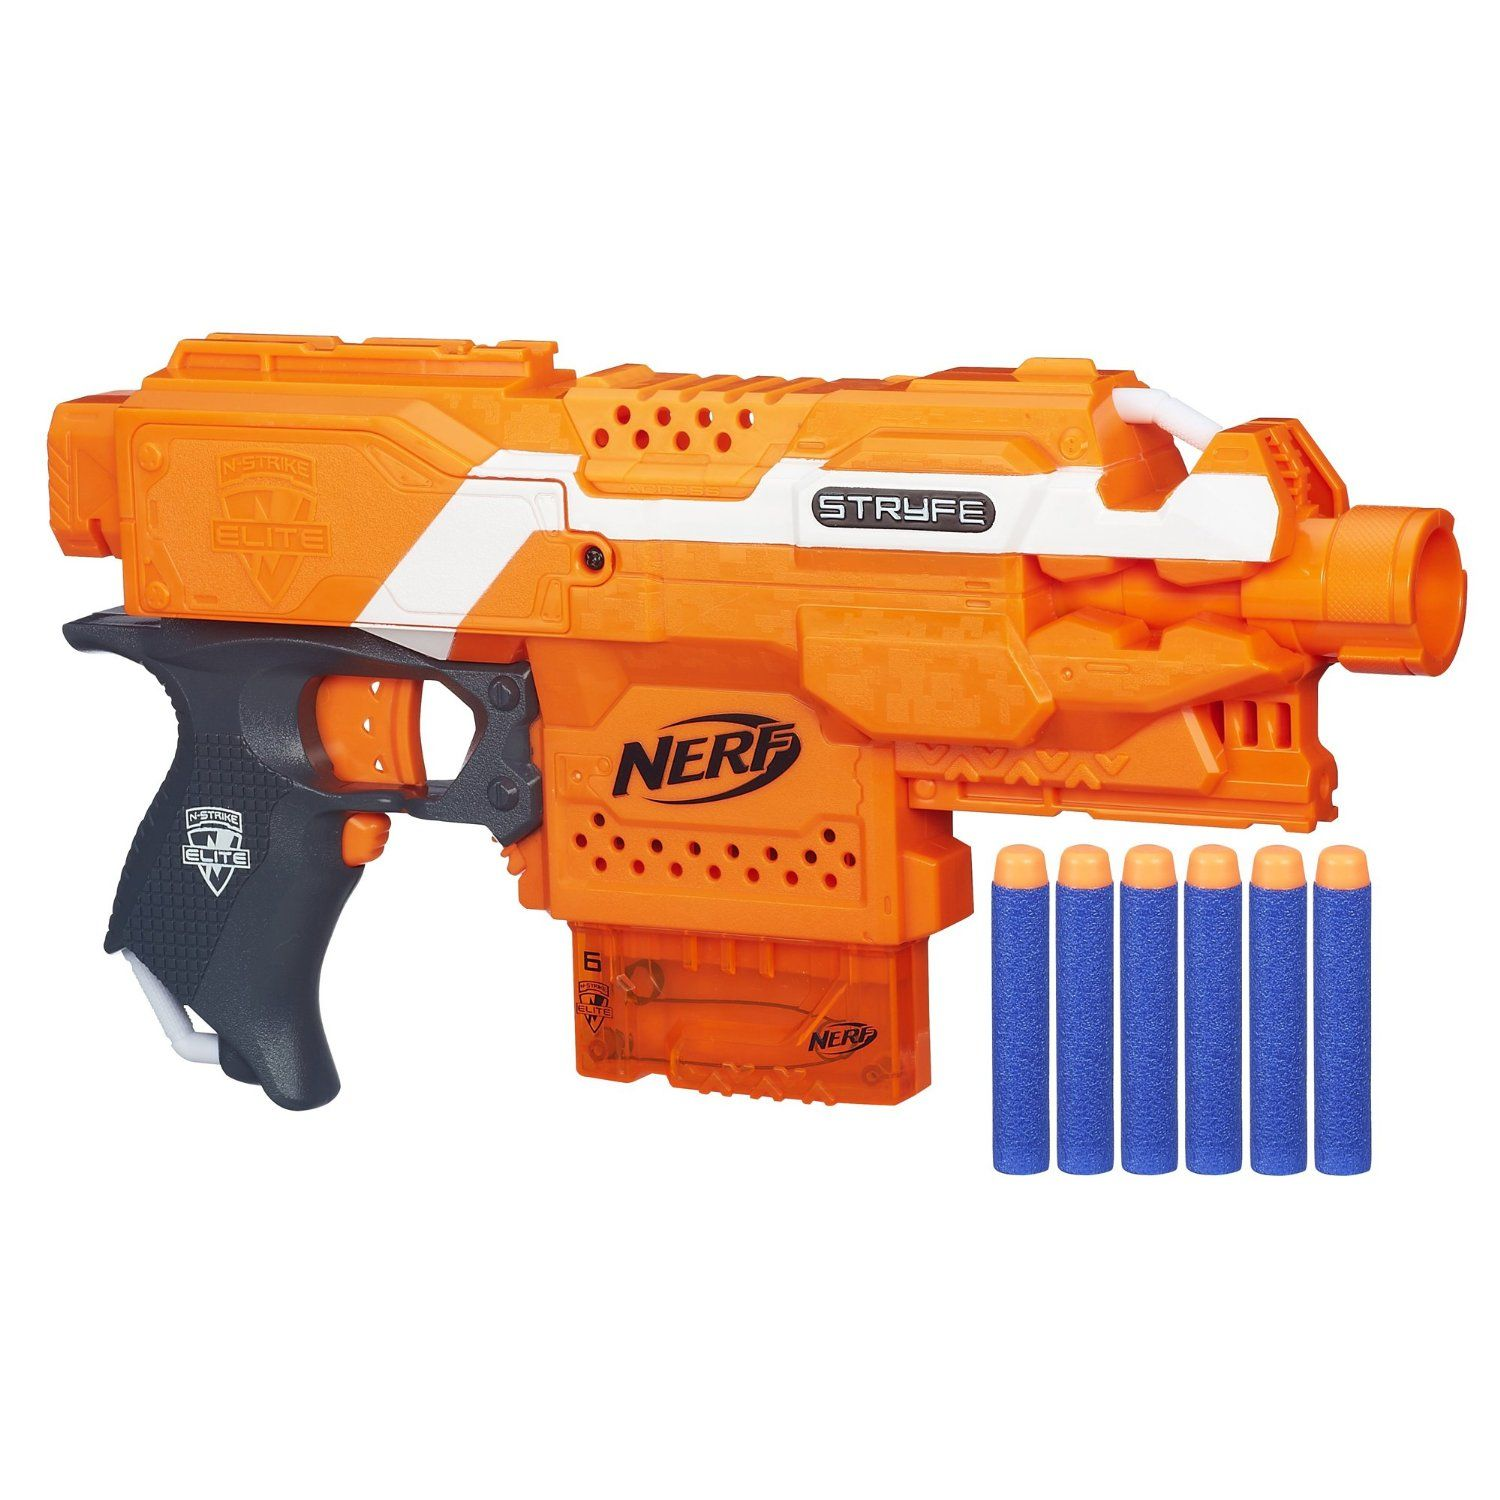 Awesome Top 10 Best Nerf Guns For Kids in 2016 Reviews